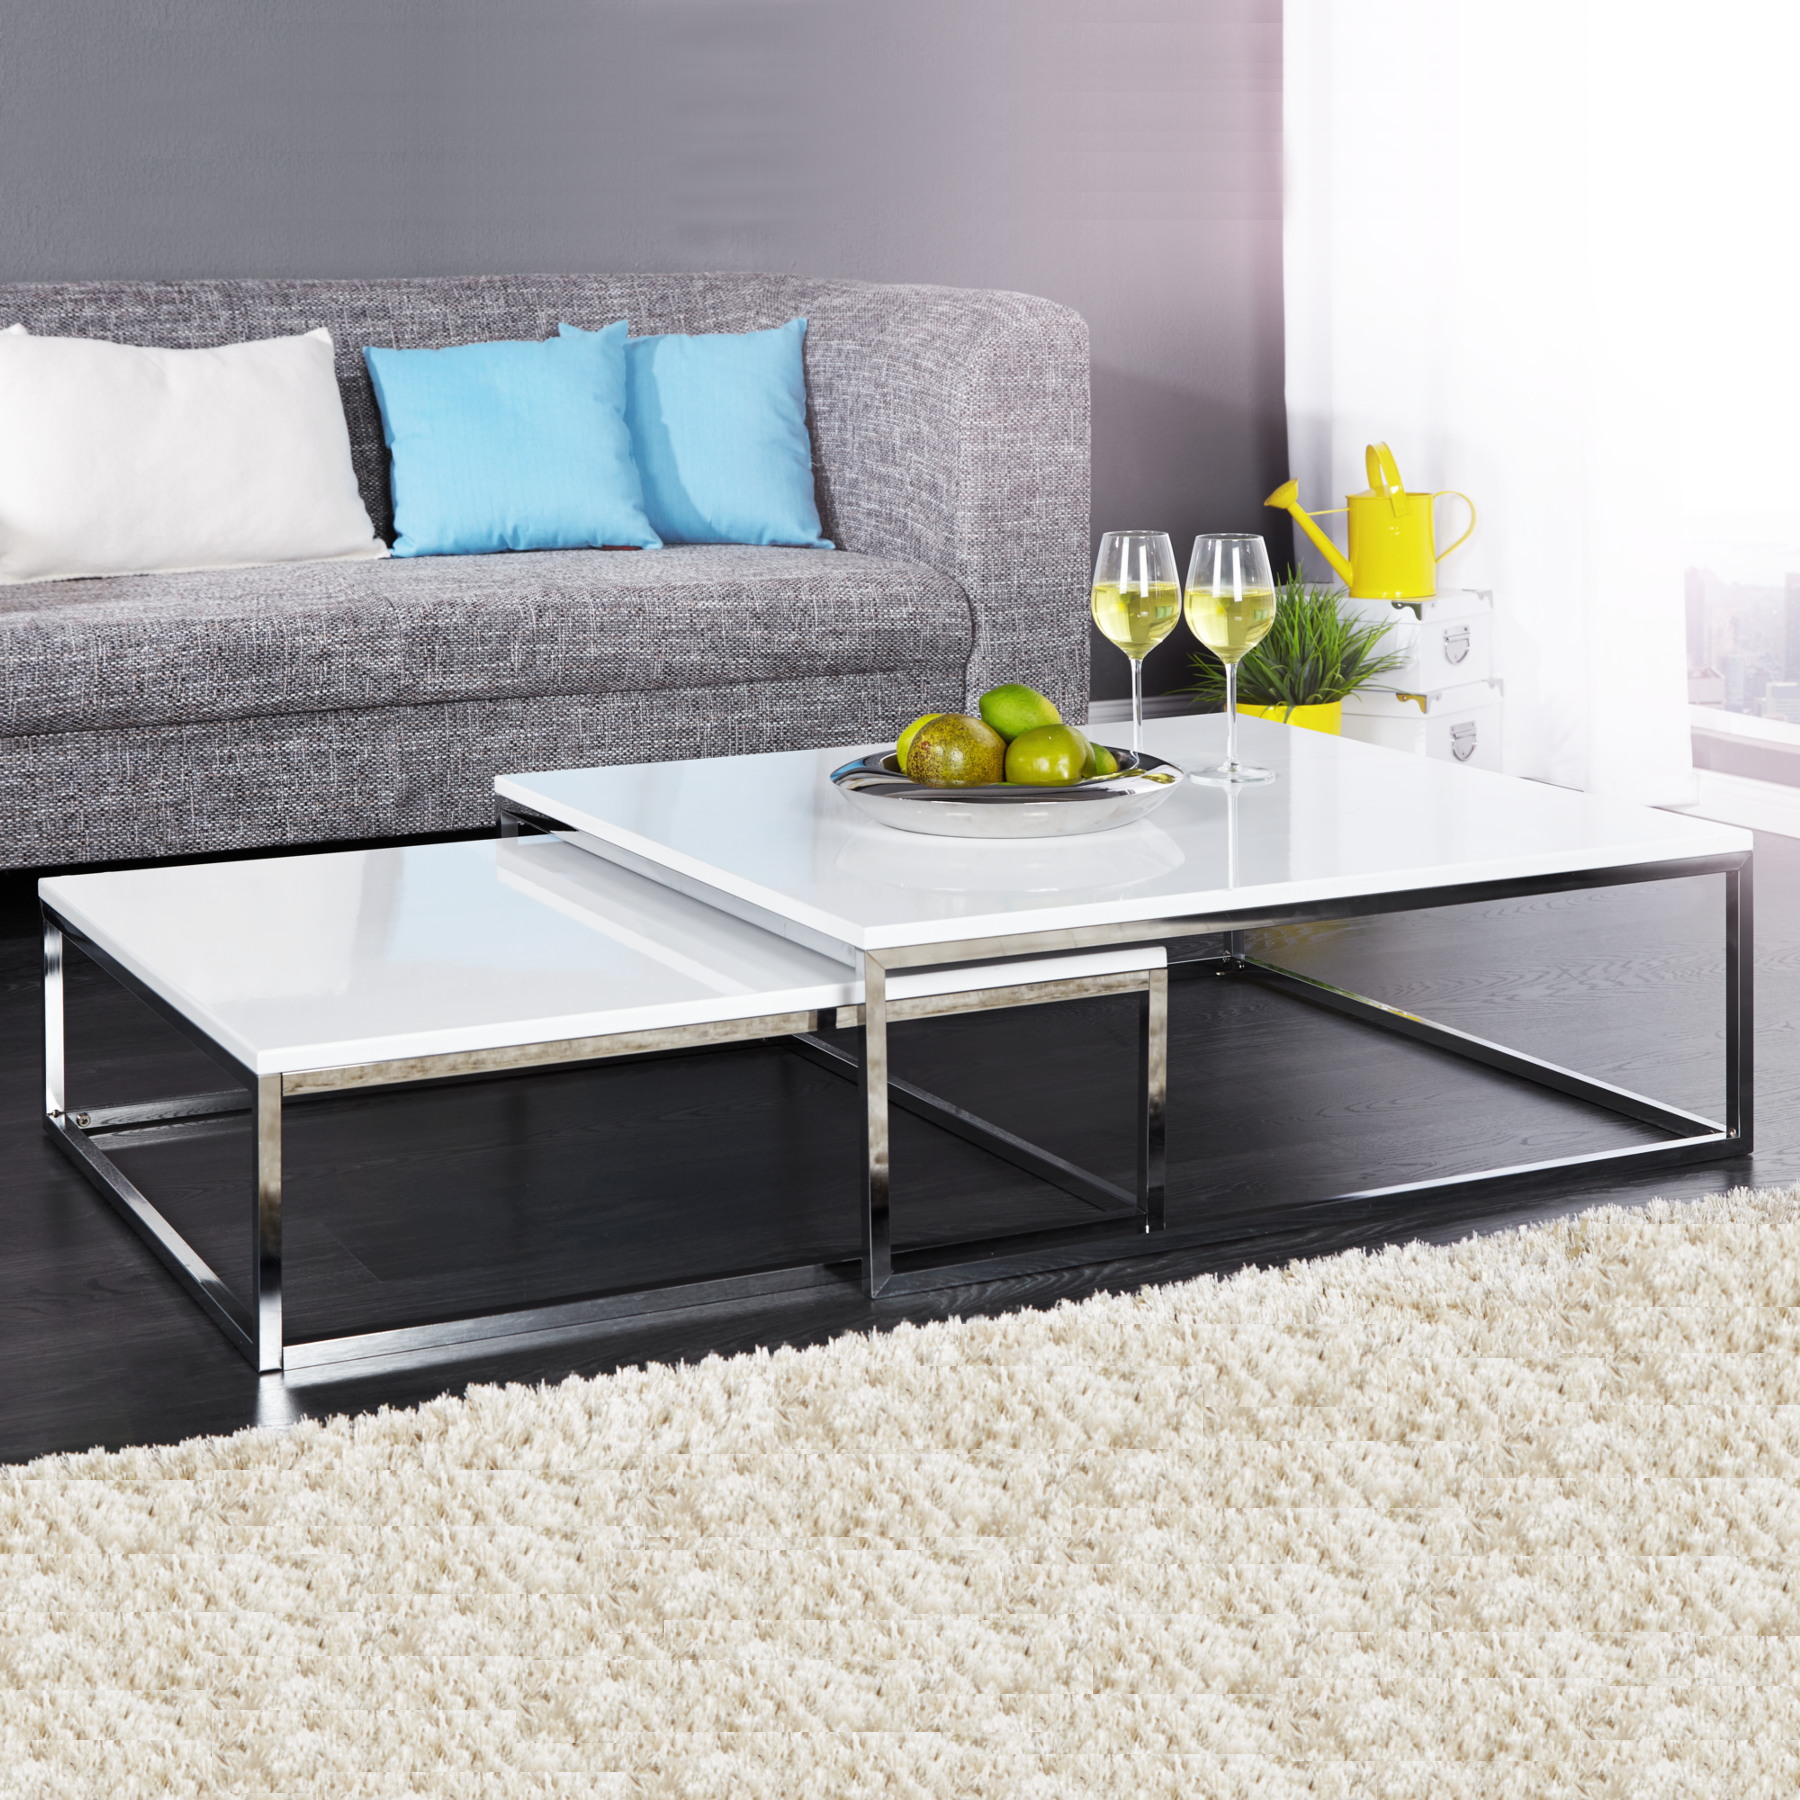 couchtisch 2er set big fusion hochglanz weiss beistelltisch wohnzimmertisch ebay. Black Bedroom Furniture Sets. Home Design Ideas